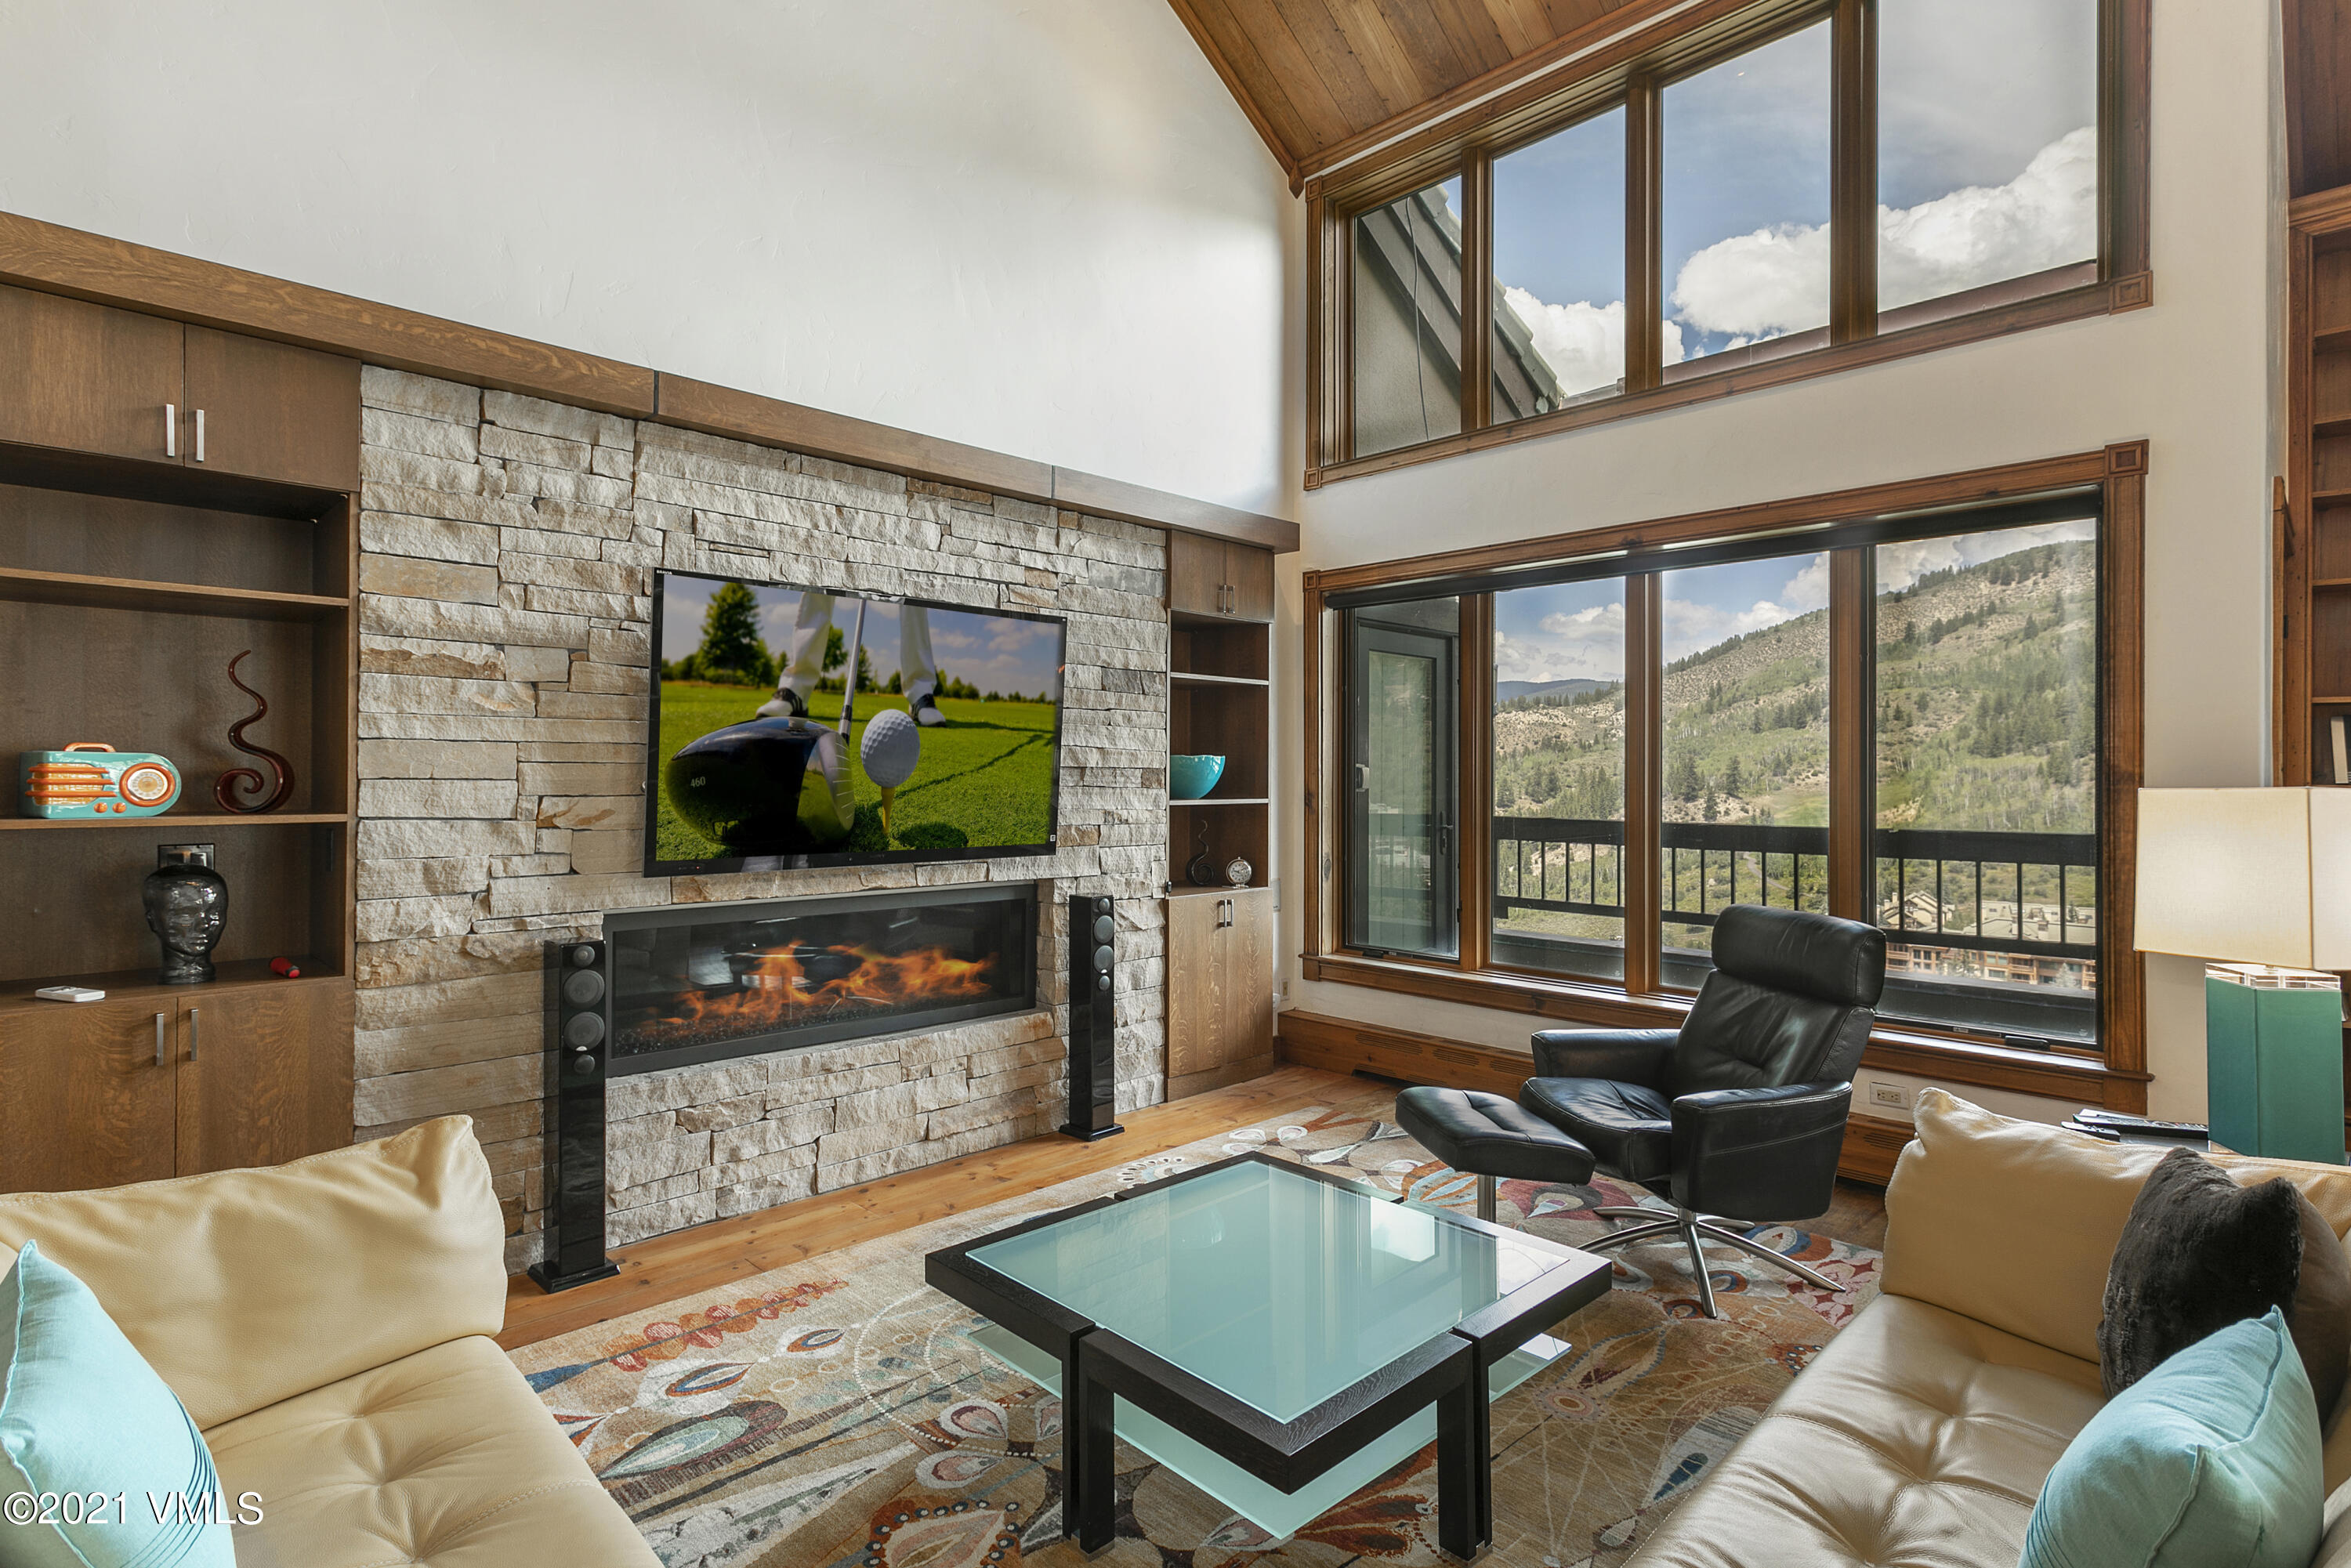 A unique opportunity to own a top-floor, five-bedroom condominium in Beaver Creek, with towering views over Beaver Creek Village to the ski slopes. Two condominiums in The Pines Lodge that are connected internally, creating spacious living with two living rooms, three bedroom suites, two kitchens, and two balconies.   Distinctive finishes include reclaimed hardwood floors, log accents, and wood ceilings create a traditional alpine look.  Only 12 condominium owners in The Pines Lodge, a Vail Resorts owned and operated hotel, with restricted access to the top floor for condominium owners.  The Pines Lodge enjoys premium ski-in/ ski-out access to Beaver Creek mountain and is home to one of Beaver Creek's best restaurants, The Grouse Mountain Grill.  Amenities include heated outdoor pool, gym, ski lockers, two assigned parking spaces, and front desk.  Offered fully-furnished, and air-conditioned.